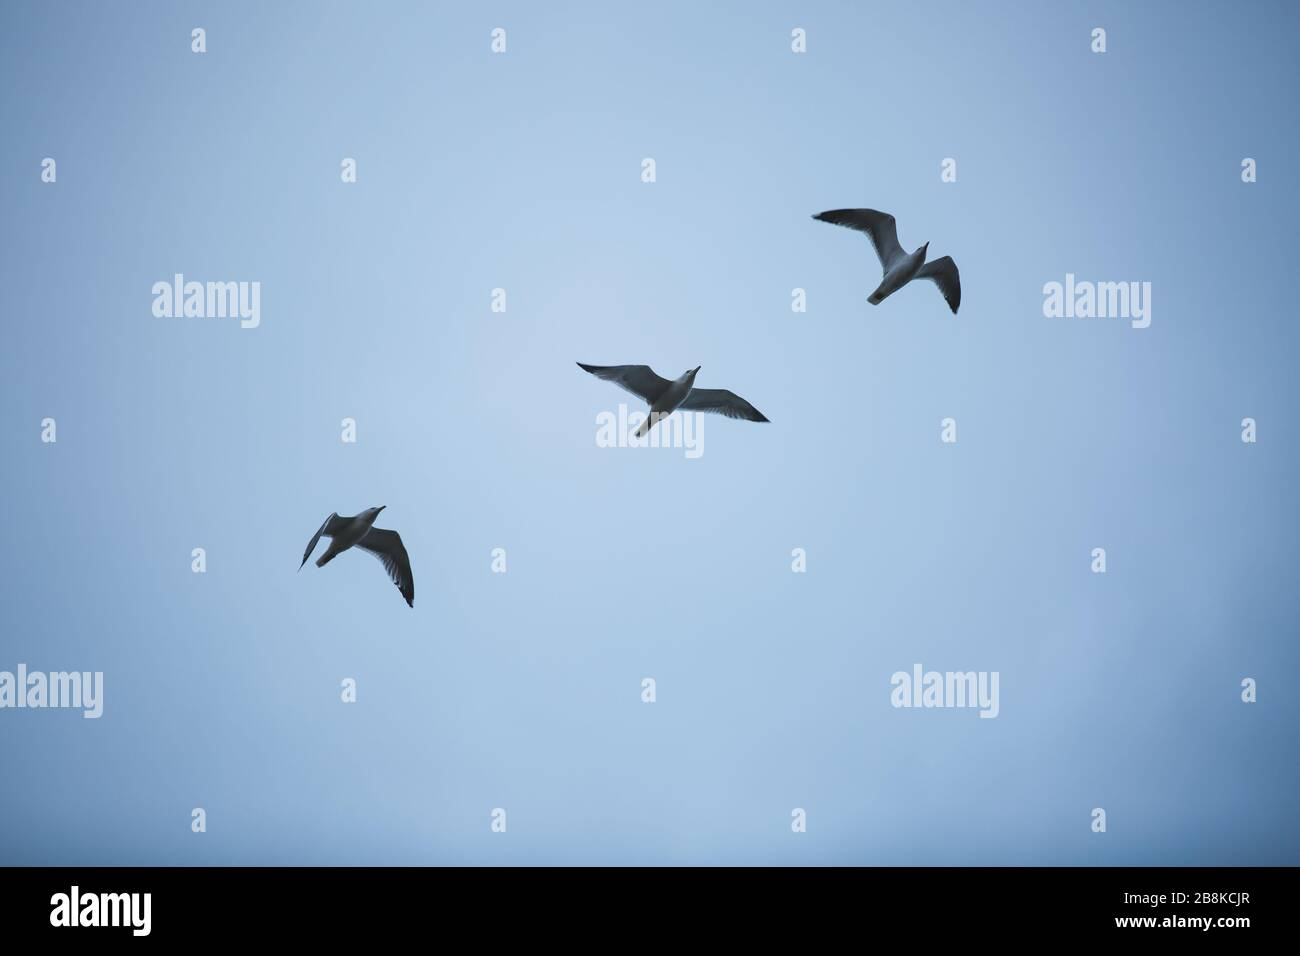 Three Seagull Birds Flying - with blue sky background Stock Photo